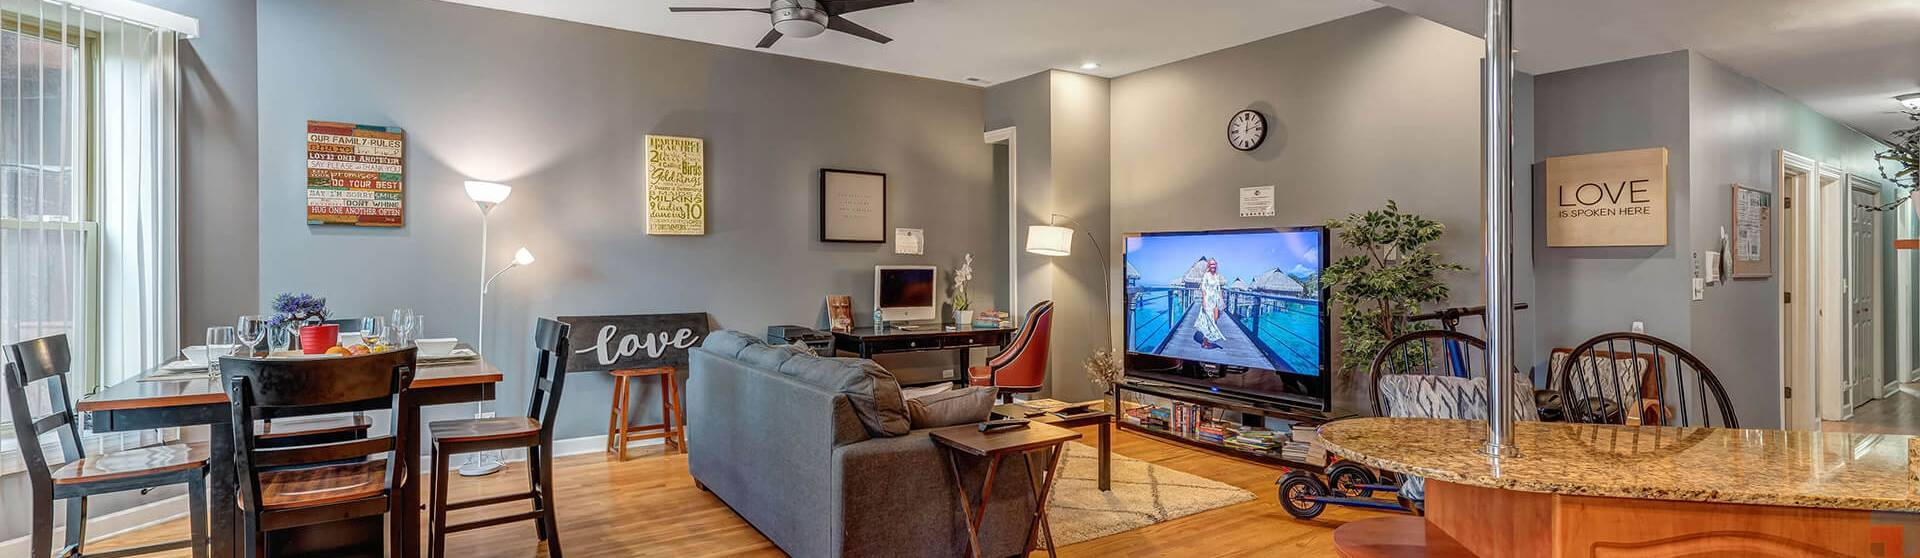 6433 South Kenwood Avenue GN, Chicago, Illinois 60, Illinois, 2 Bedrooms Bedrooms, ,2 BathroomsBathrooms,Apartment,For Long Rent,6433 South Kenwood Avenue GN, Chicago, Illinois 60,1234